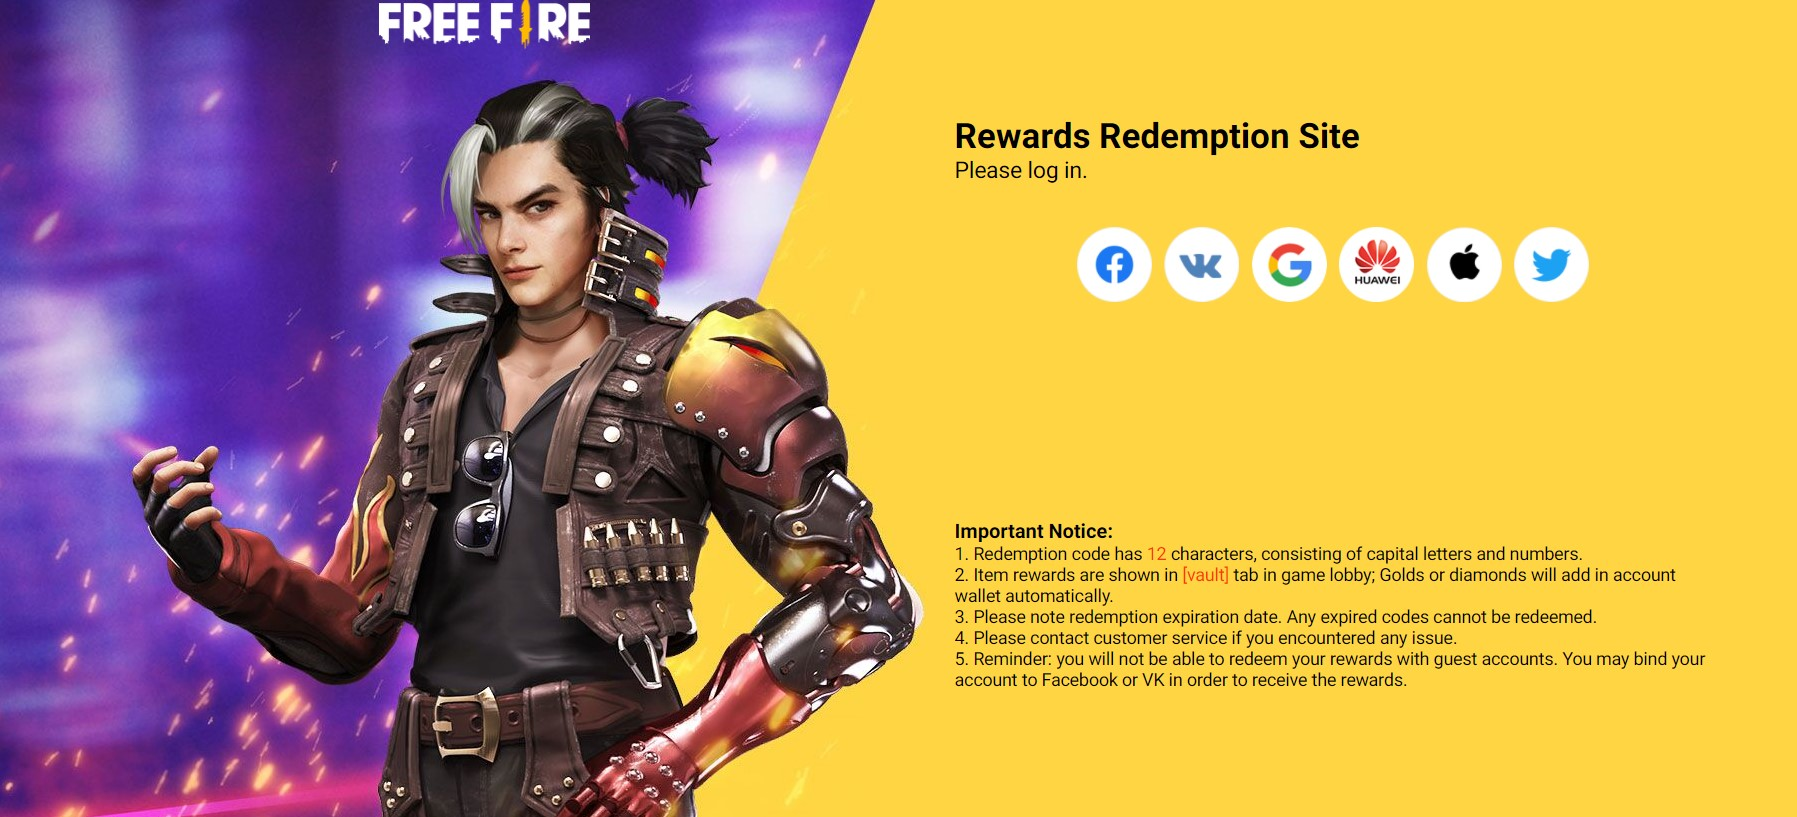 Free Fire Redeem Code List: ff garena free fire redeem code 7th July, 2021: Free custom room cards in India available